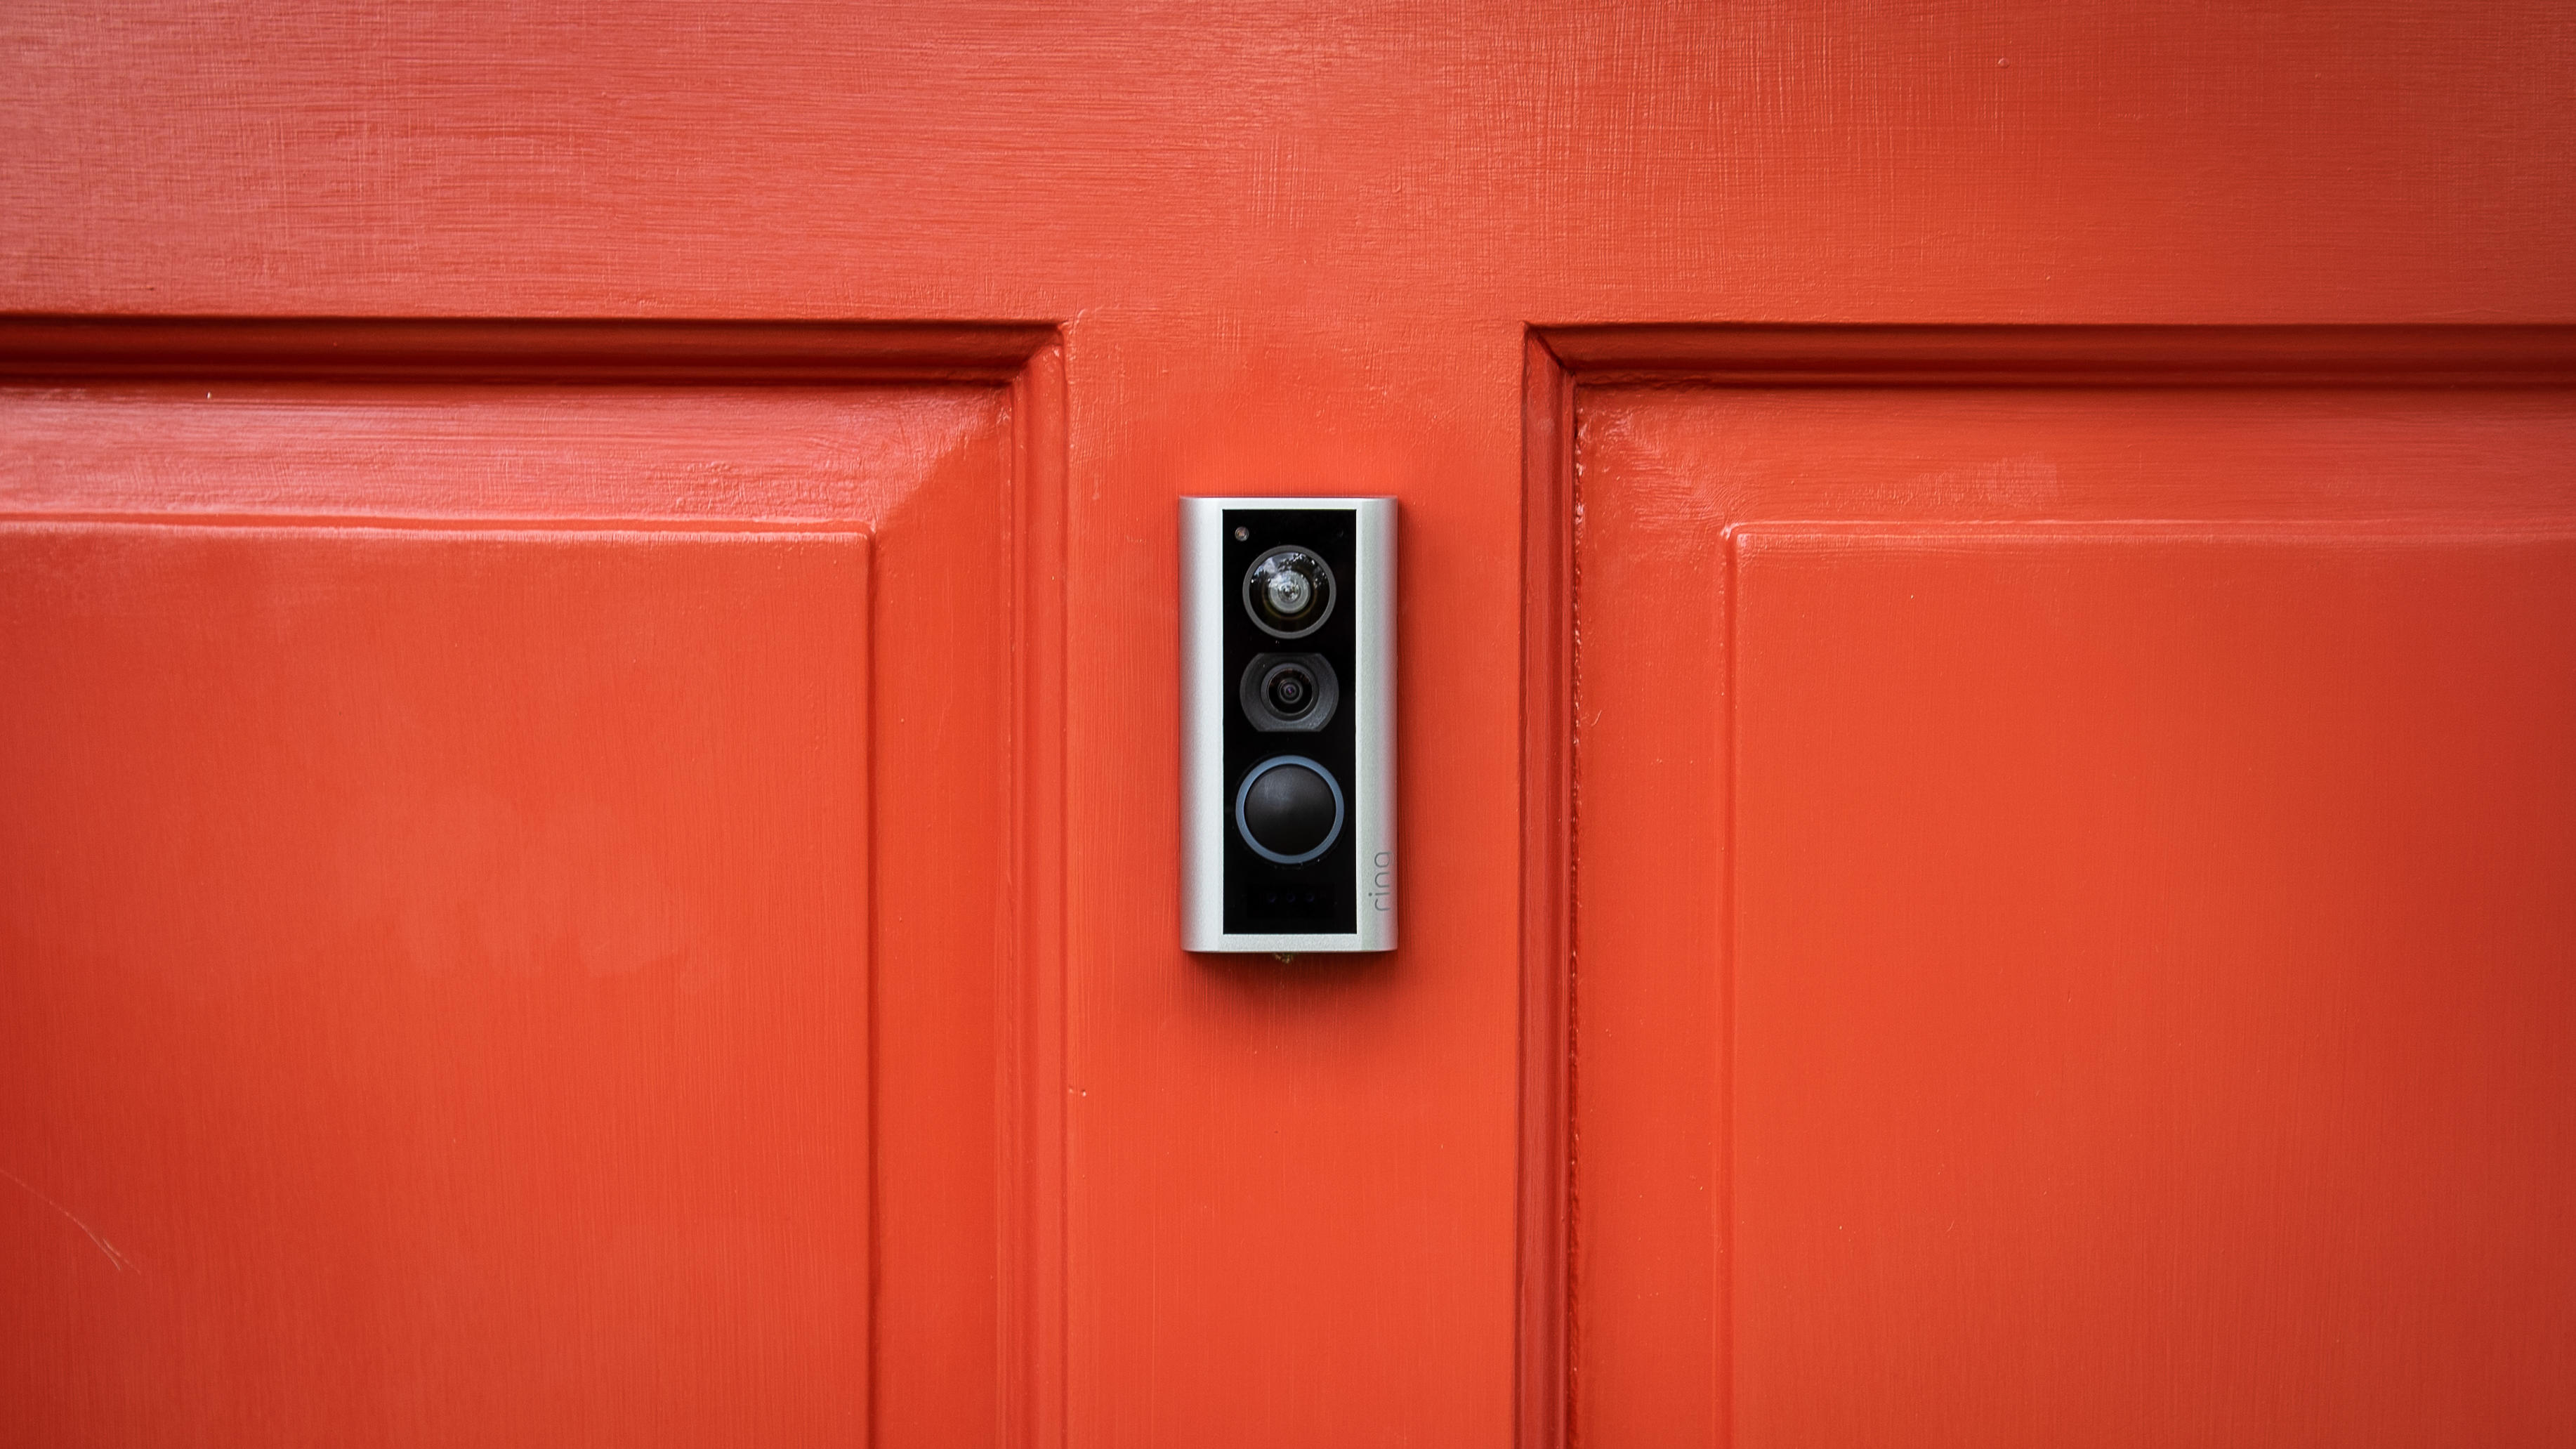 Best Ring of Prime Day 2021 Deals: Ring Doorbell Bundle for $ 55 Off, Save $ 100 on 8-Piece Ring Alarm Kit